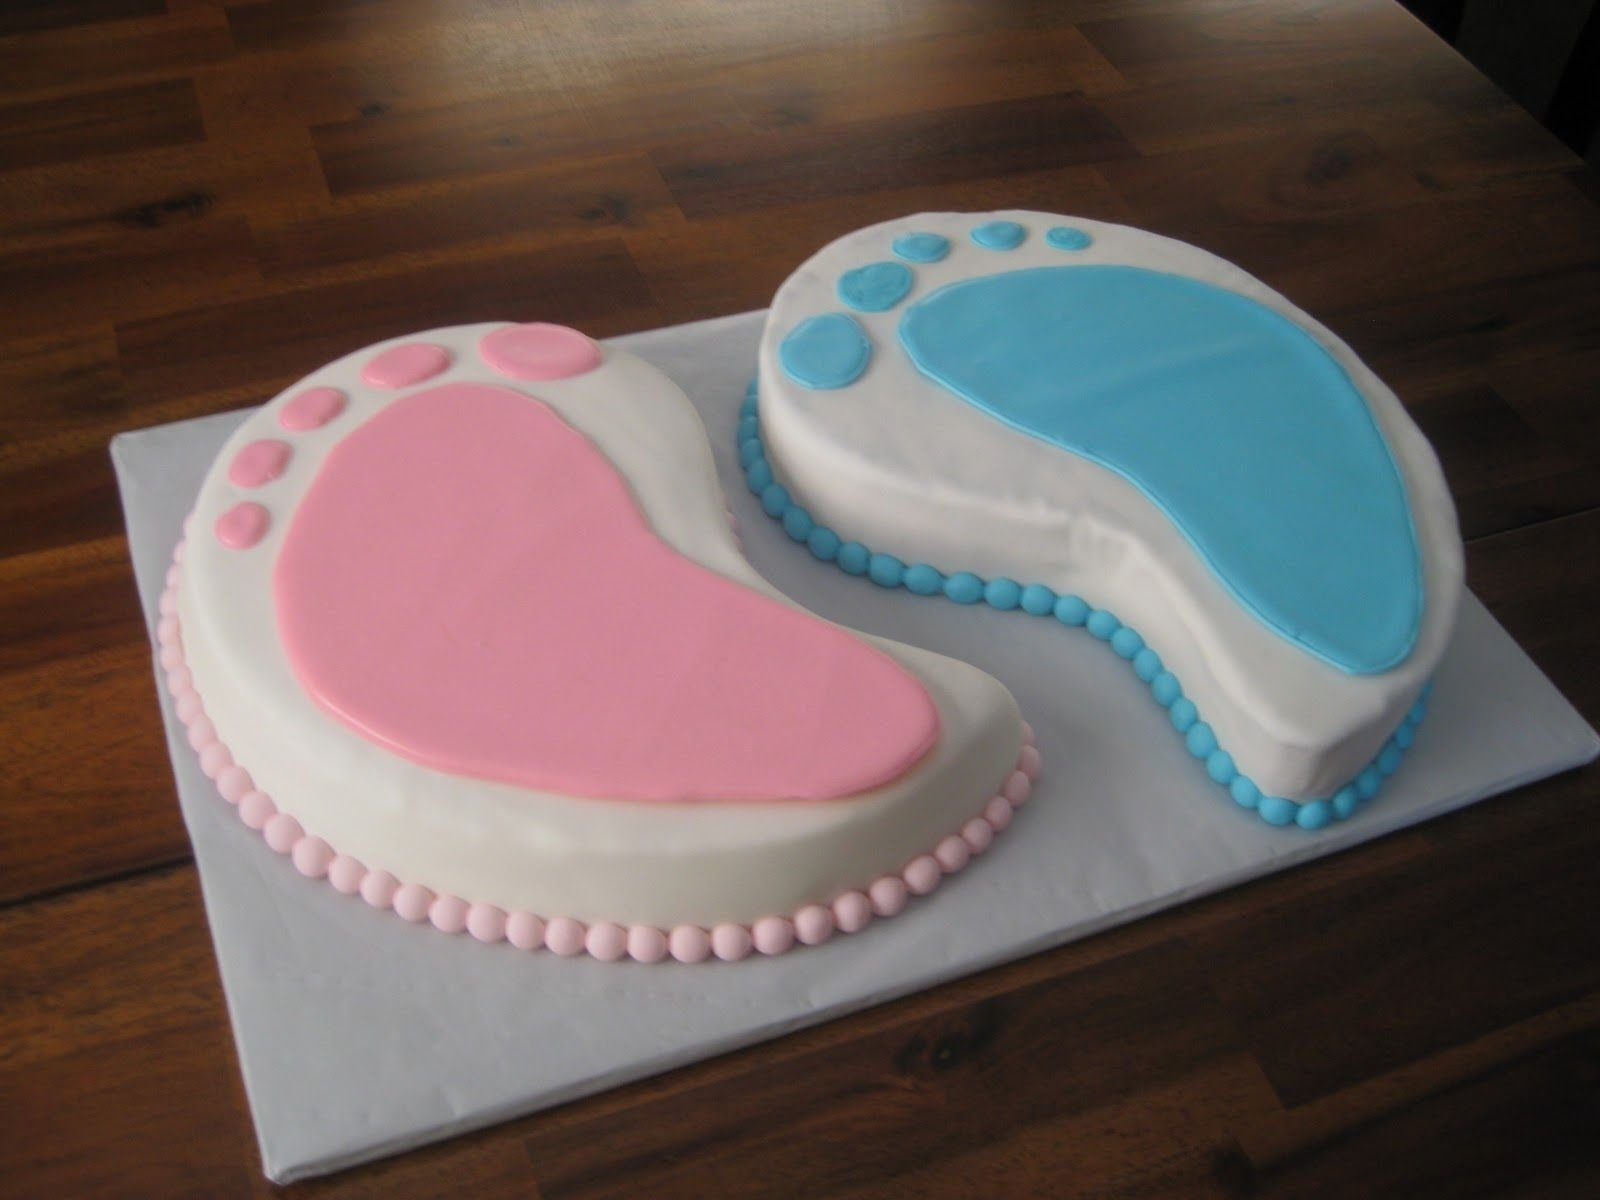 10 Elegant Ideas For Twin Baby Shower ashlynn leigh cakes busy valentineu002639s day weekend twin baby 2021